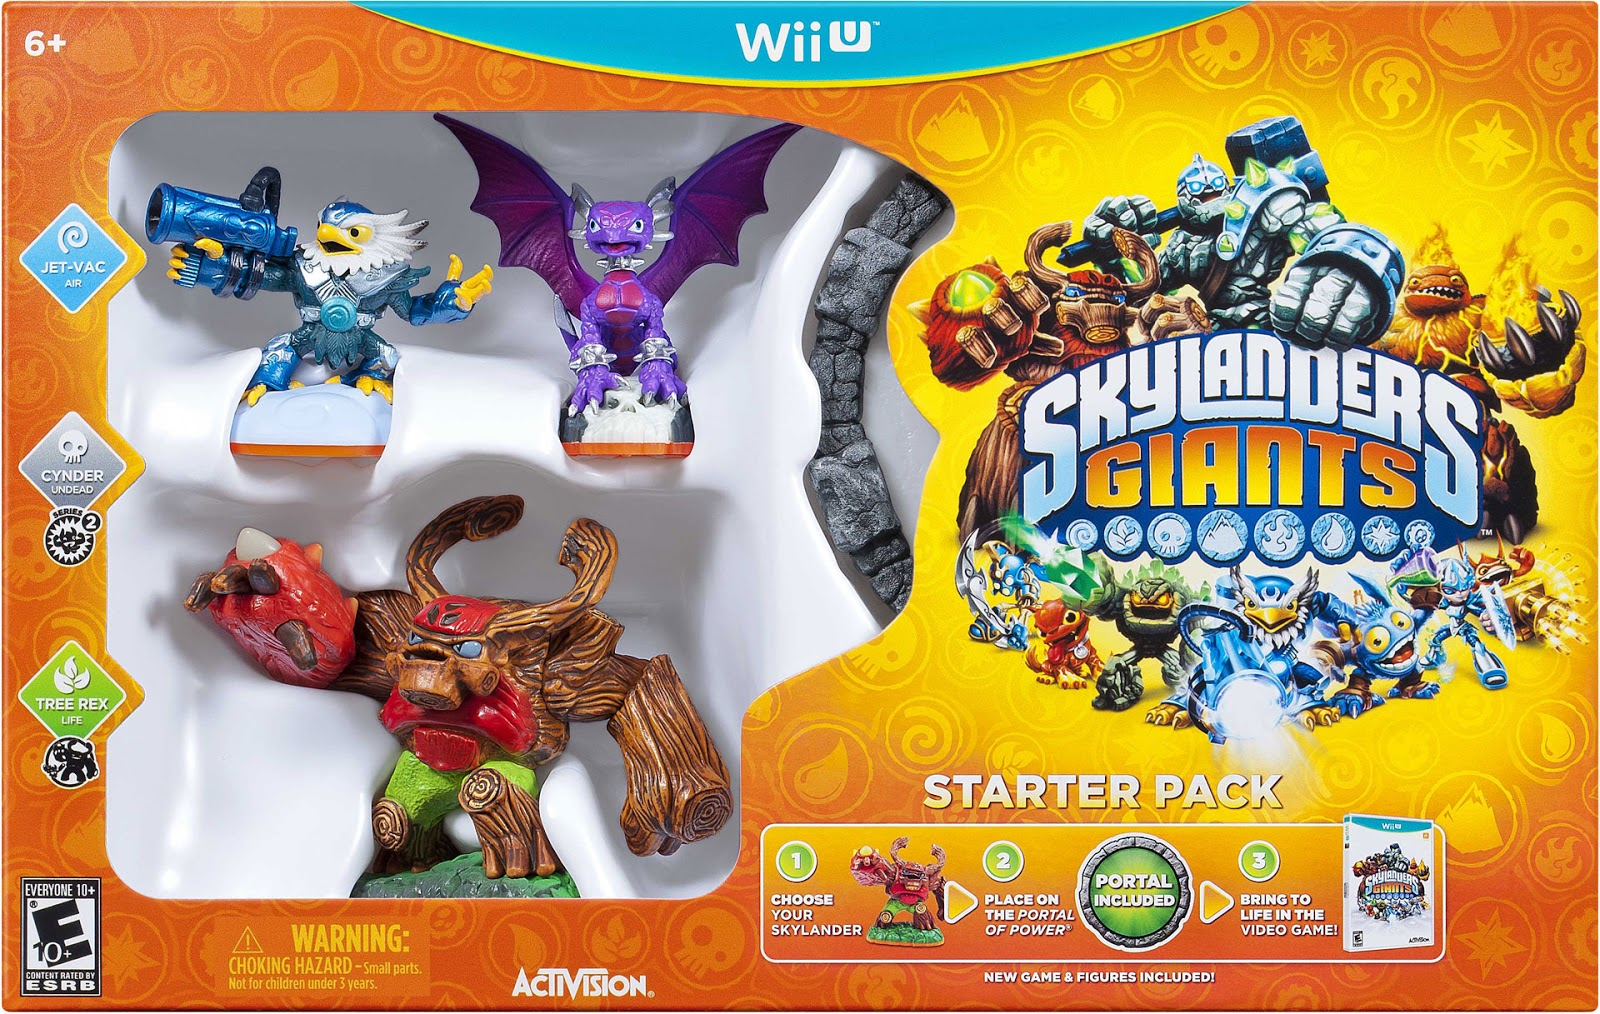 Decided to pick up the skylanders giants starter package for the wii